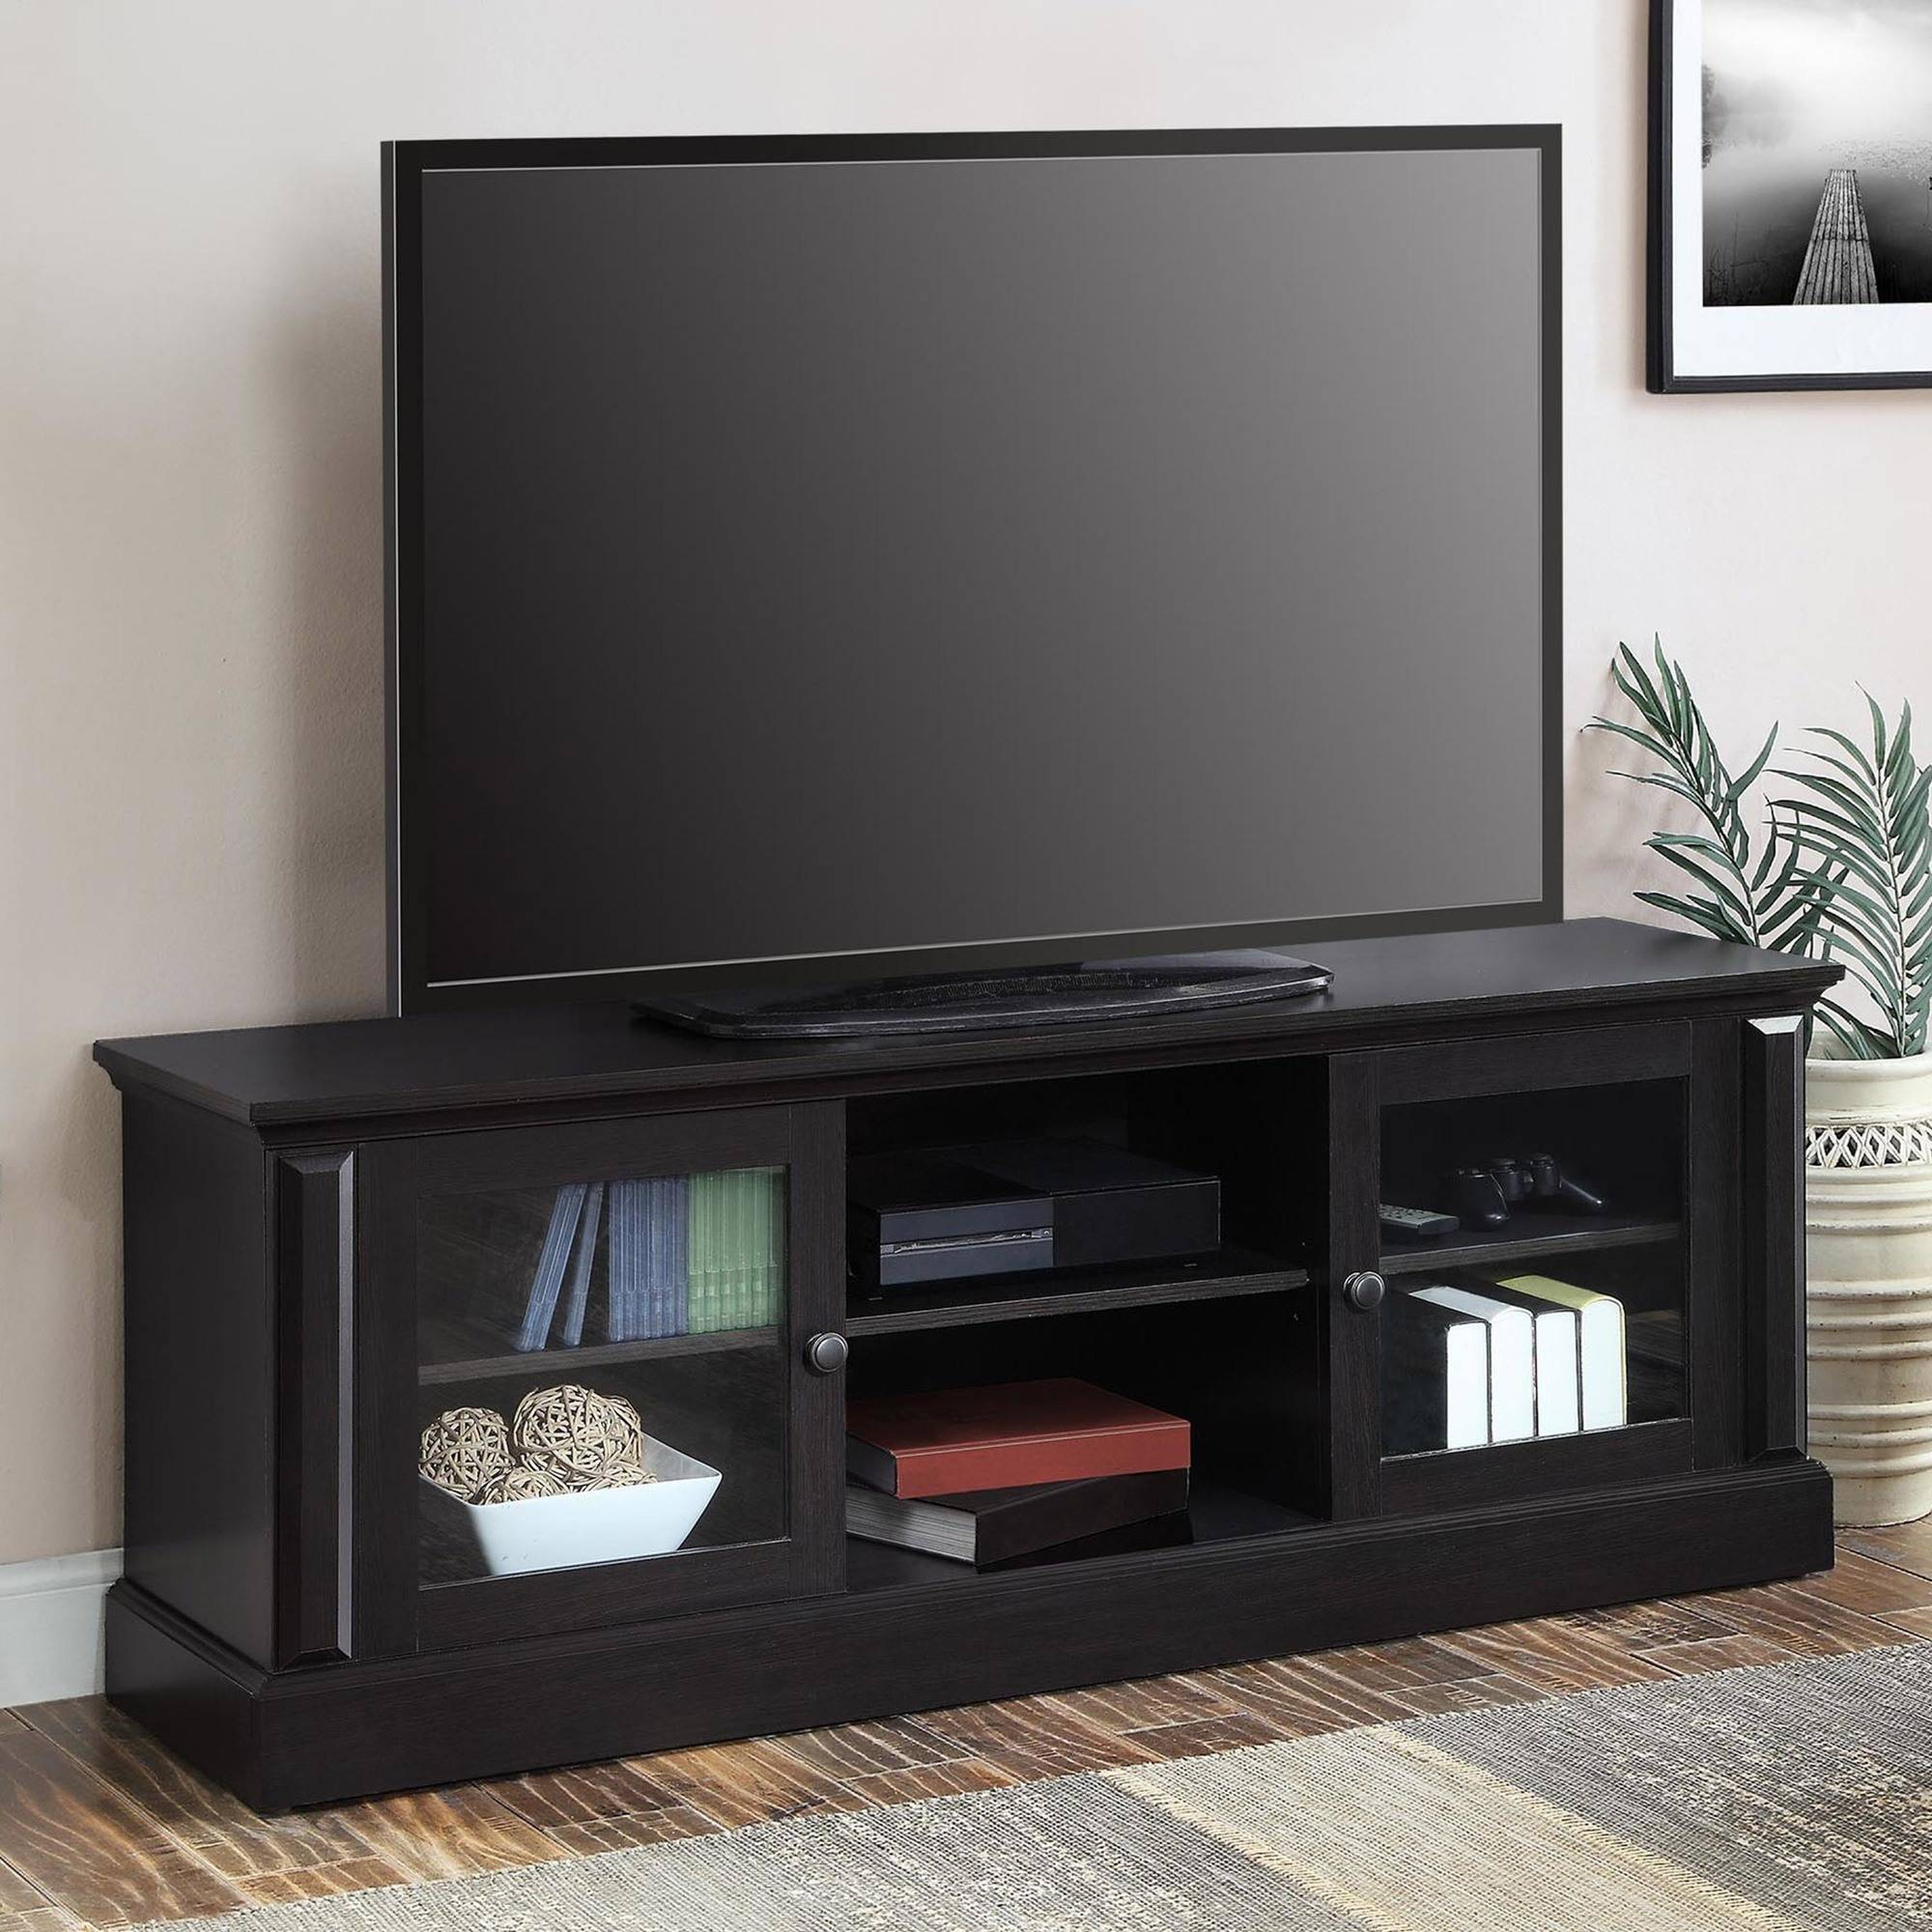 "Barston Media Console for TVs up to 70"", Espresso Finish"